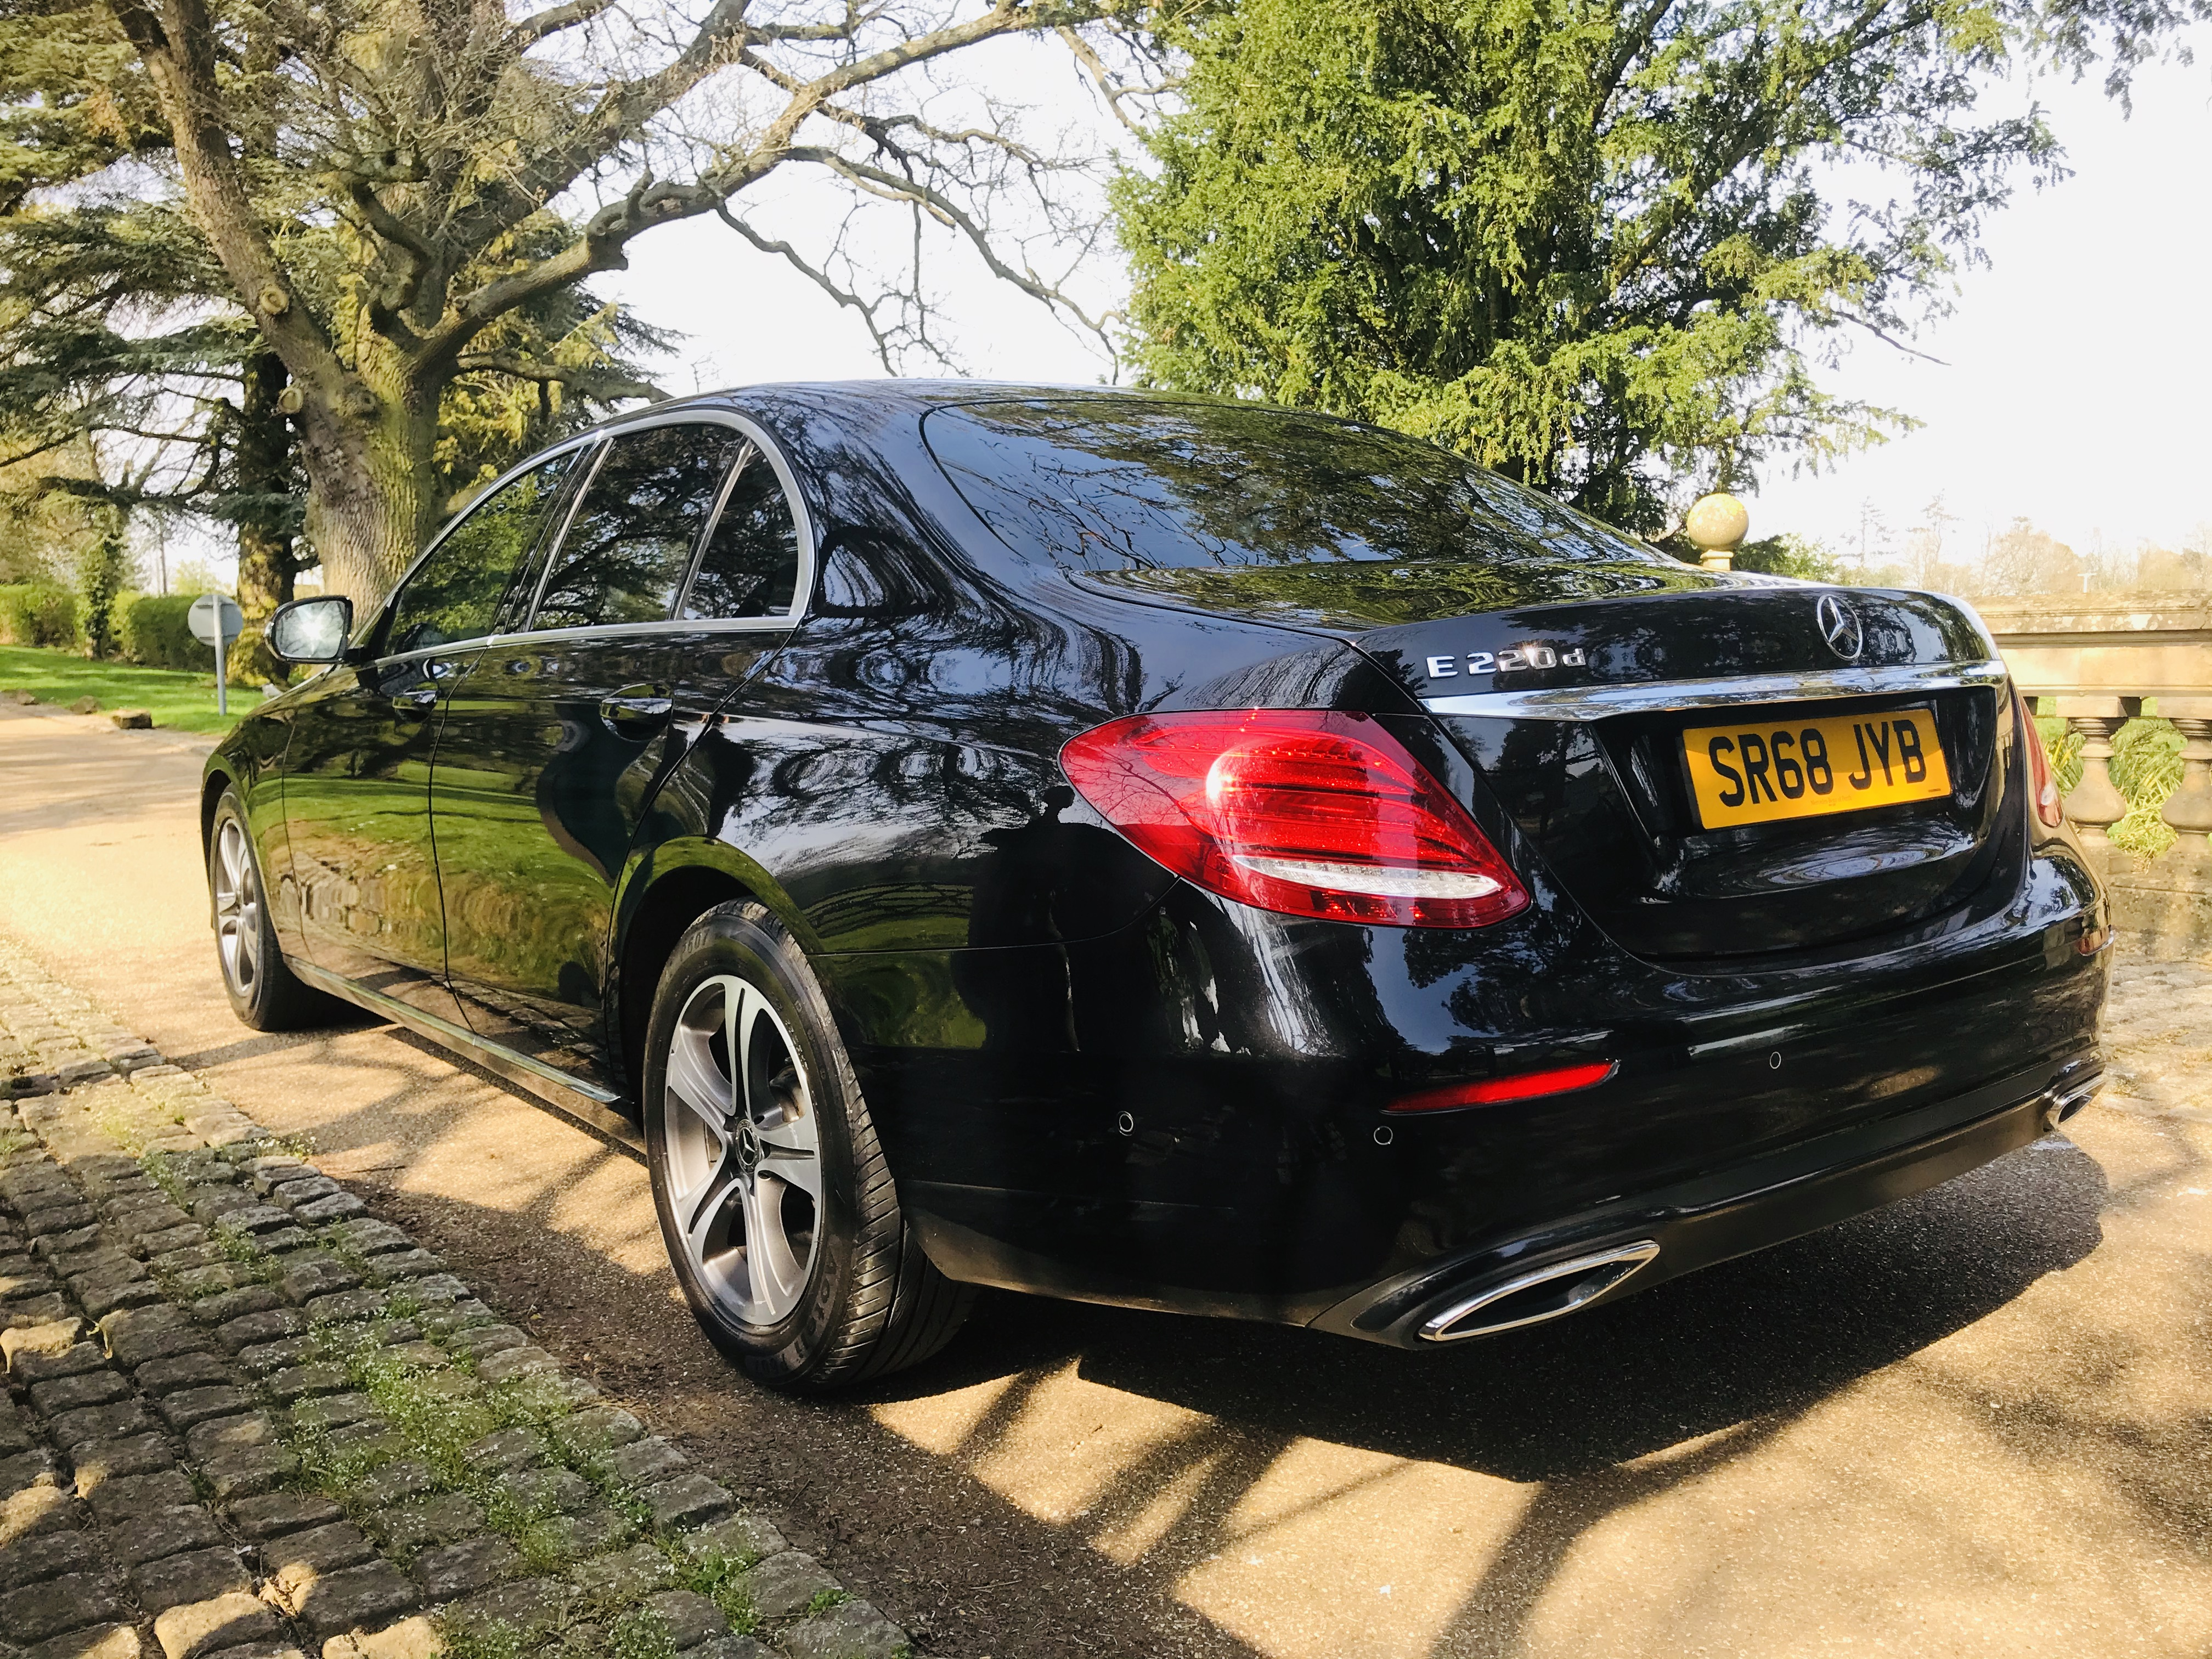 """On Sale MERCEDES E220d """"SPECIAL EQUIPMENT"""" 9G TRONIC (2019 MODEL) 1 OWNER - SAT NAV - LEATHER - WOW! - Image 6 of 26"""